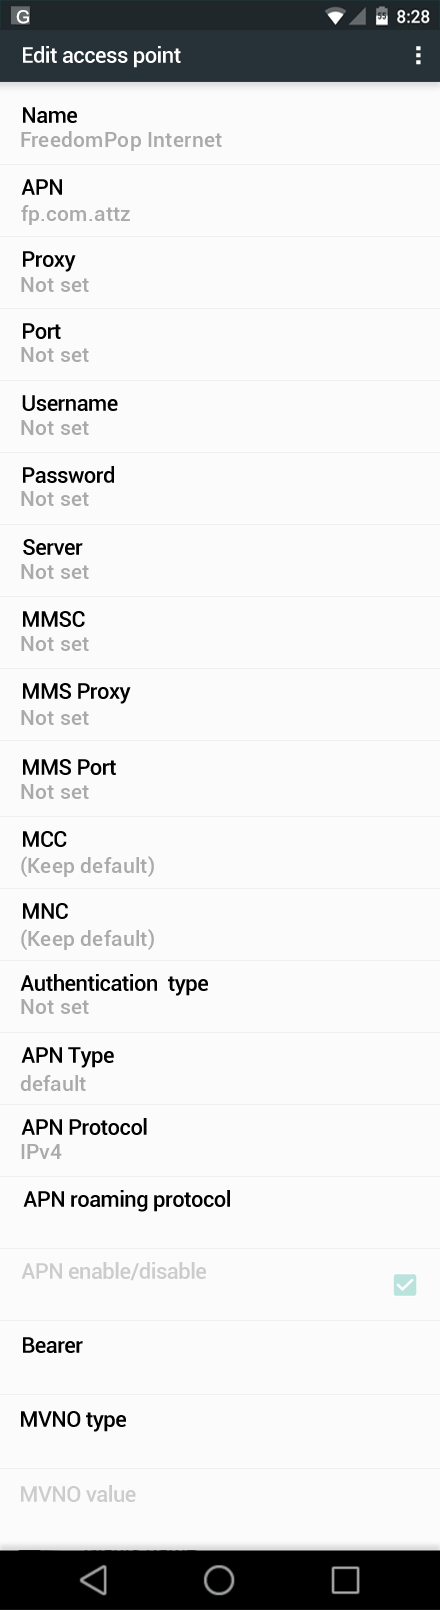 FreedomPop Internet APN settings for Android Marshmallow screenshot